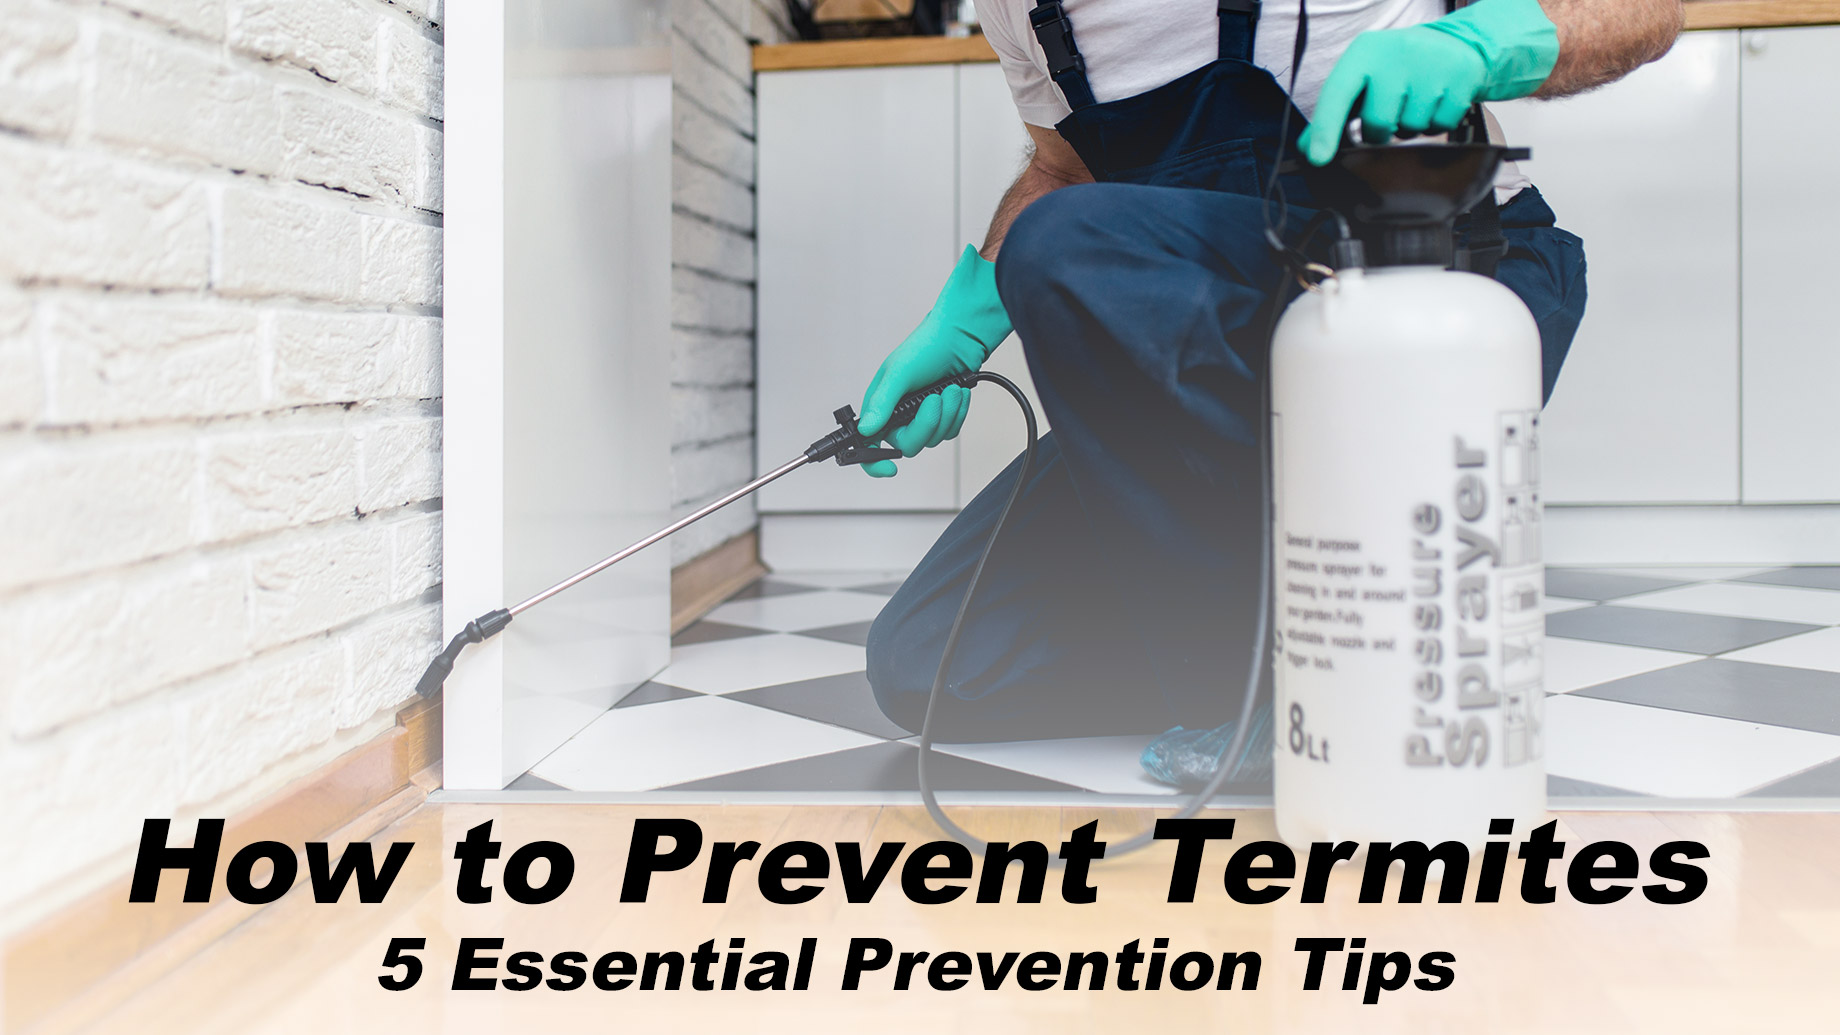 How to Prevent Termites - 5 Essential Prevention Tips